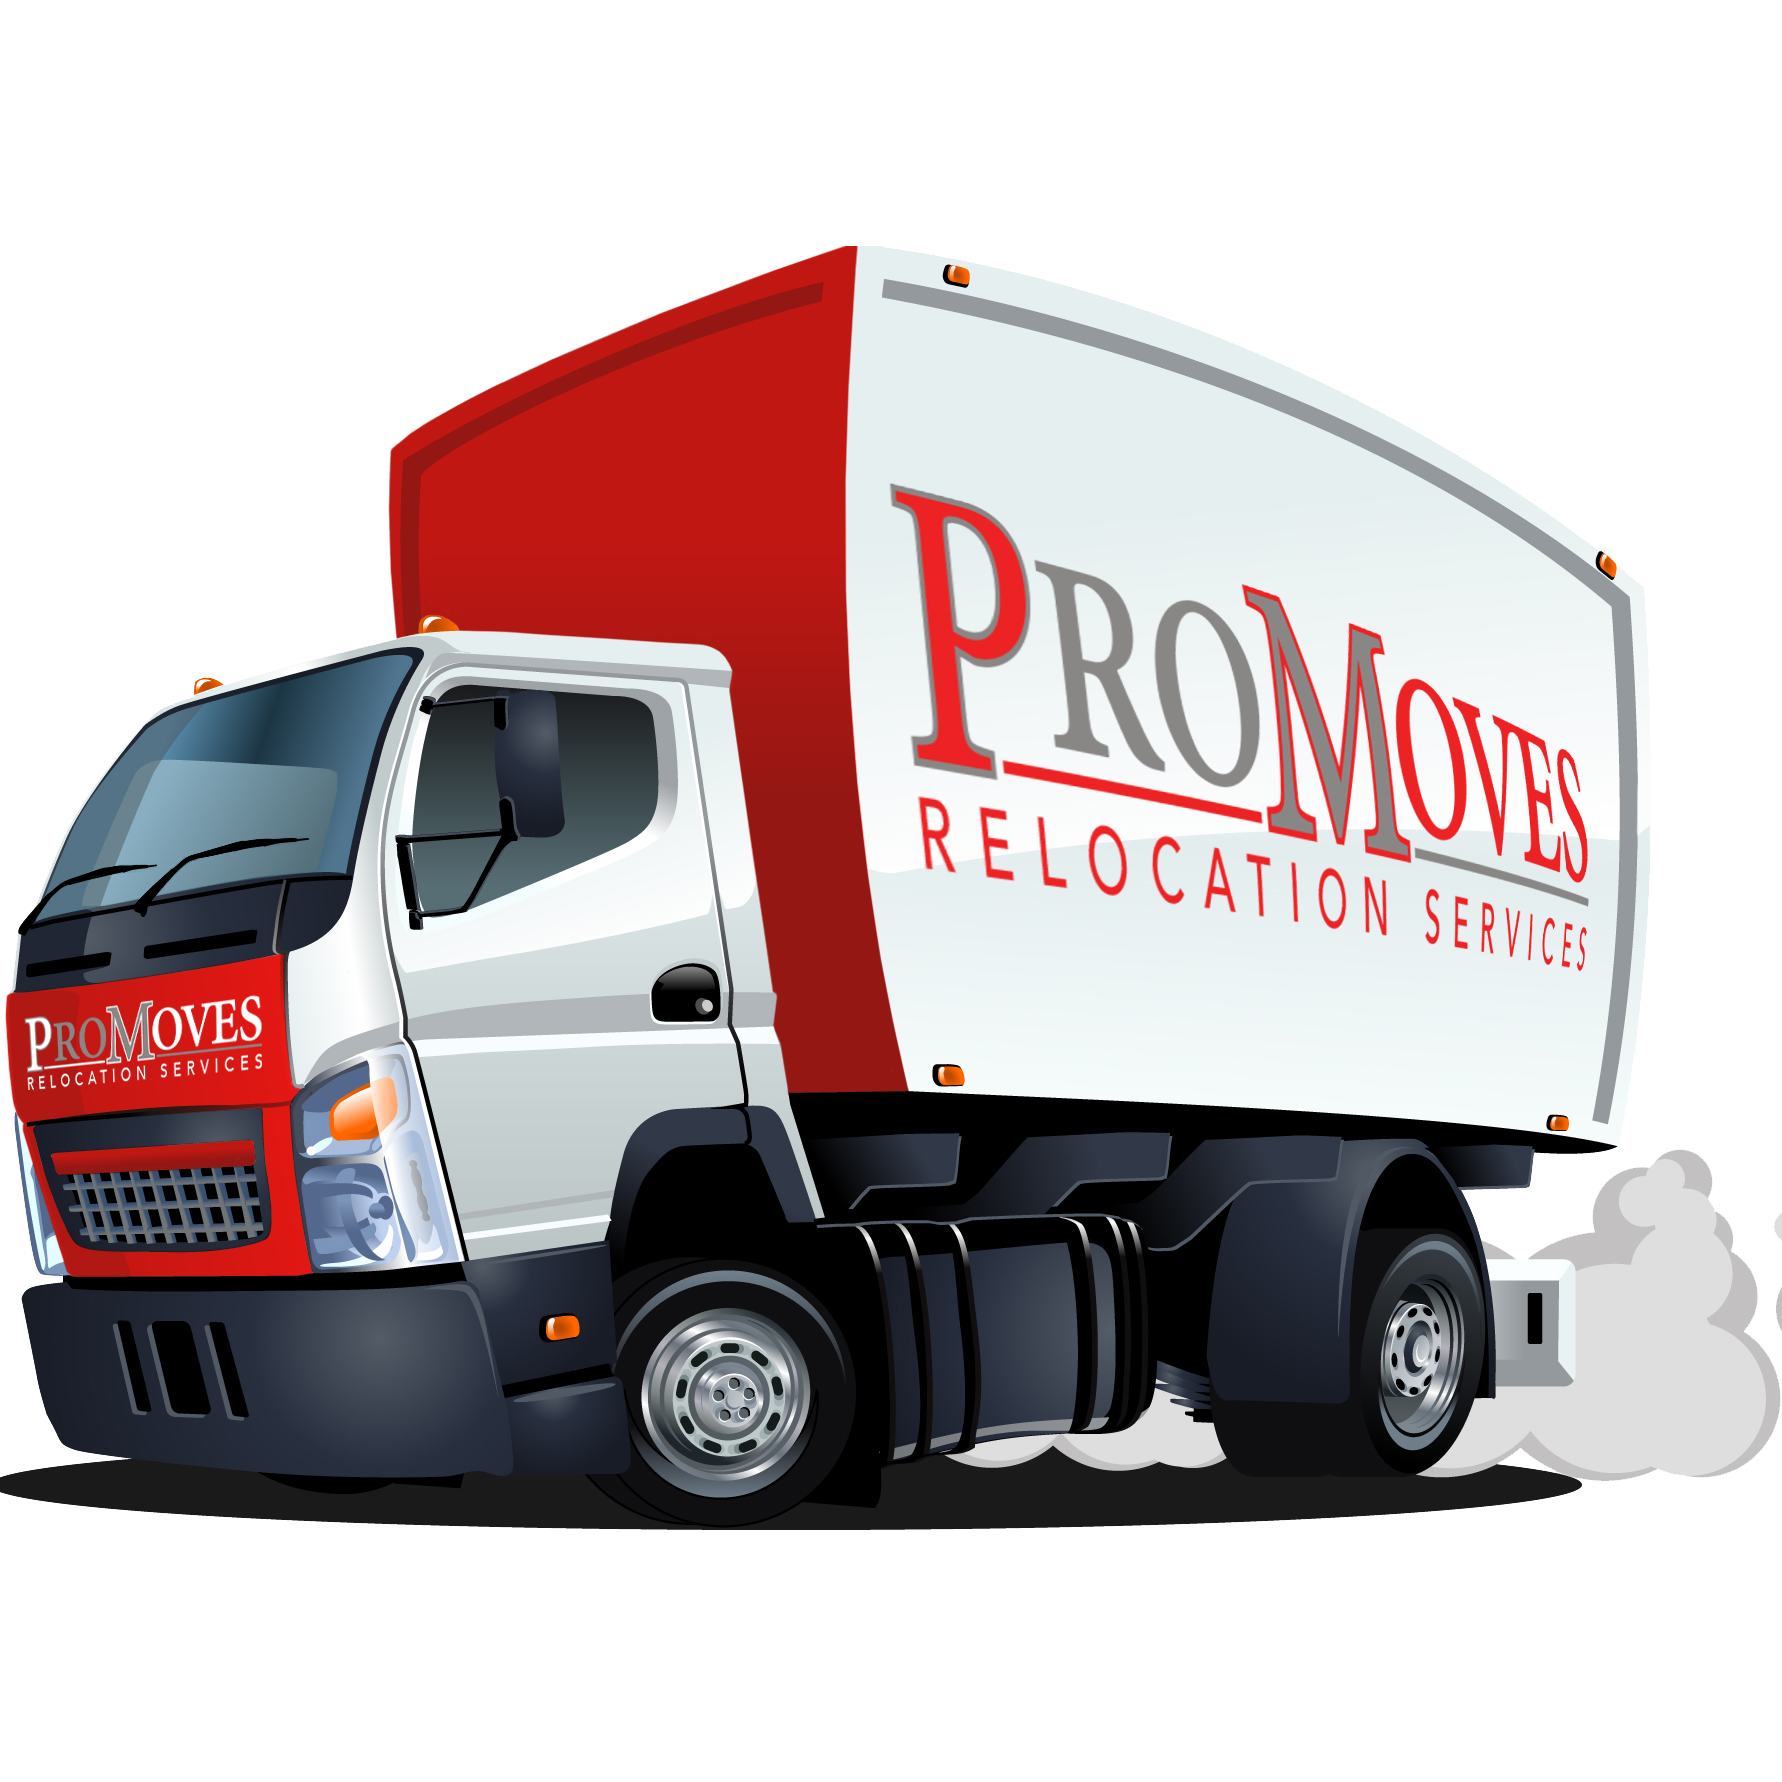 Pro Moves Relocation Services